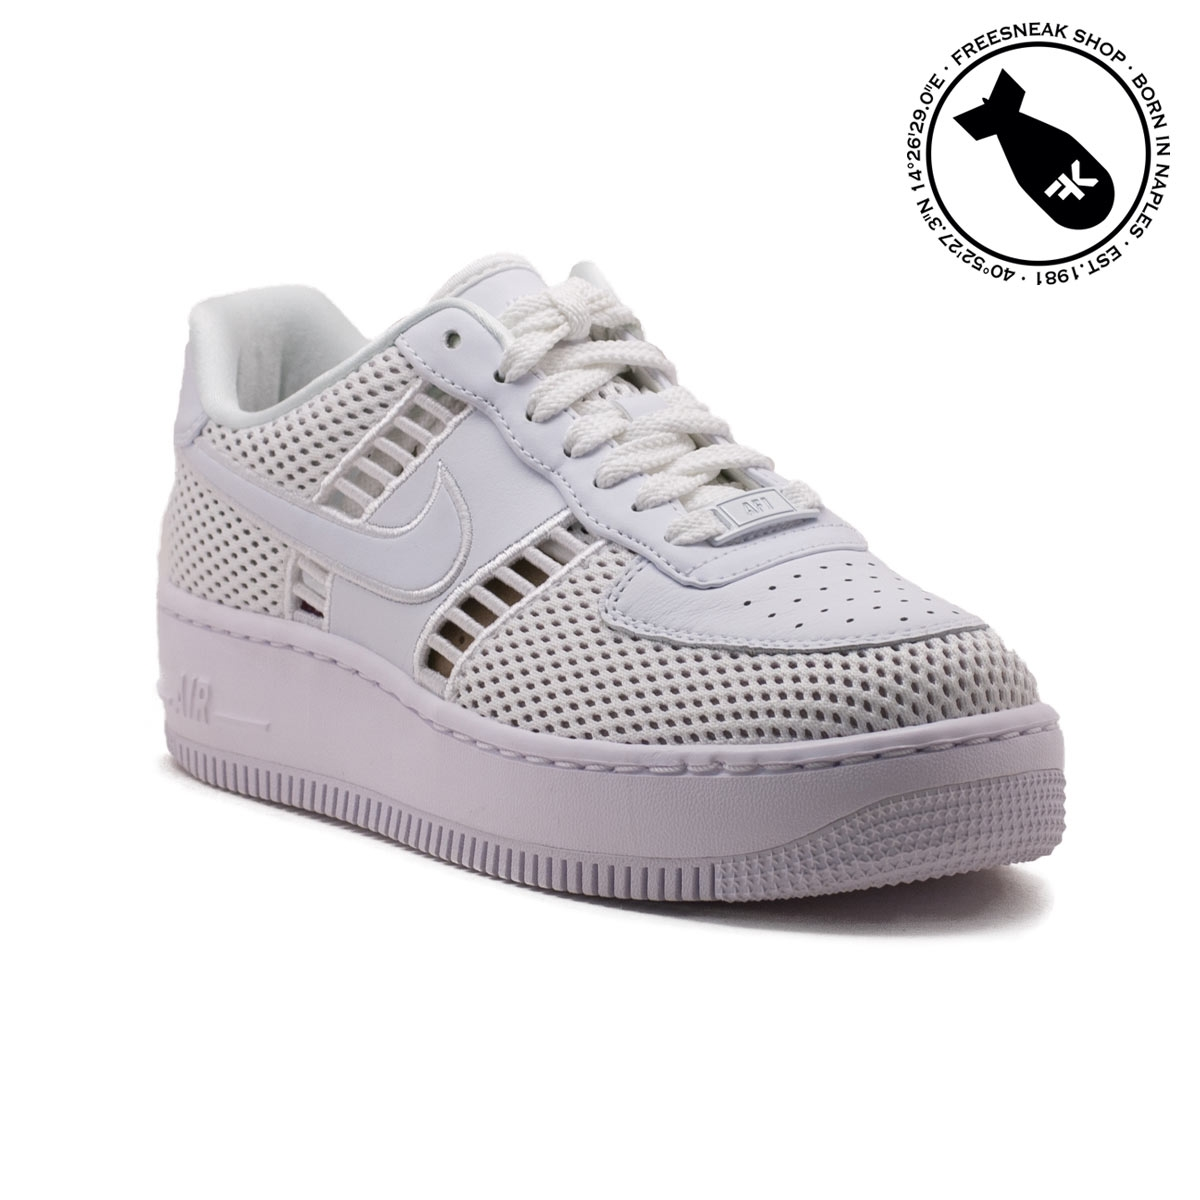 32587aa206a2 AIR FORCE 1 UPSTEP SI WHITE 917591-100. NIKE 917591-100. NIKE 917591-100. NIKE  917591-100